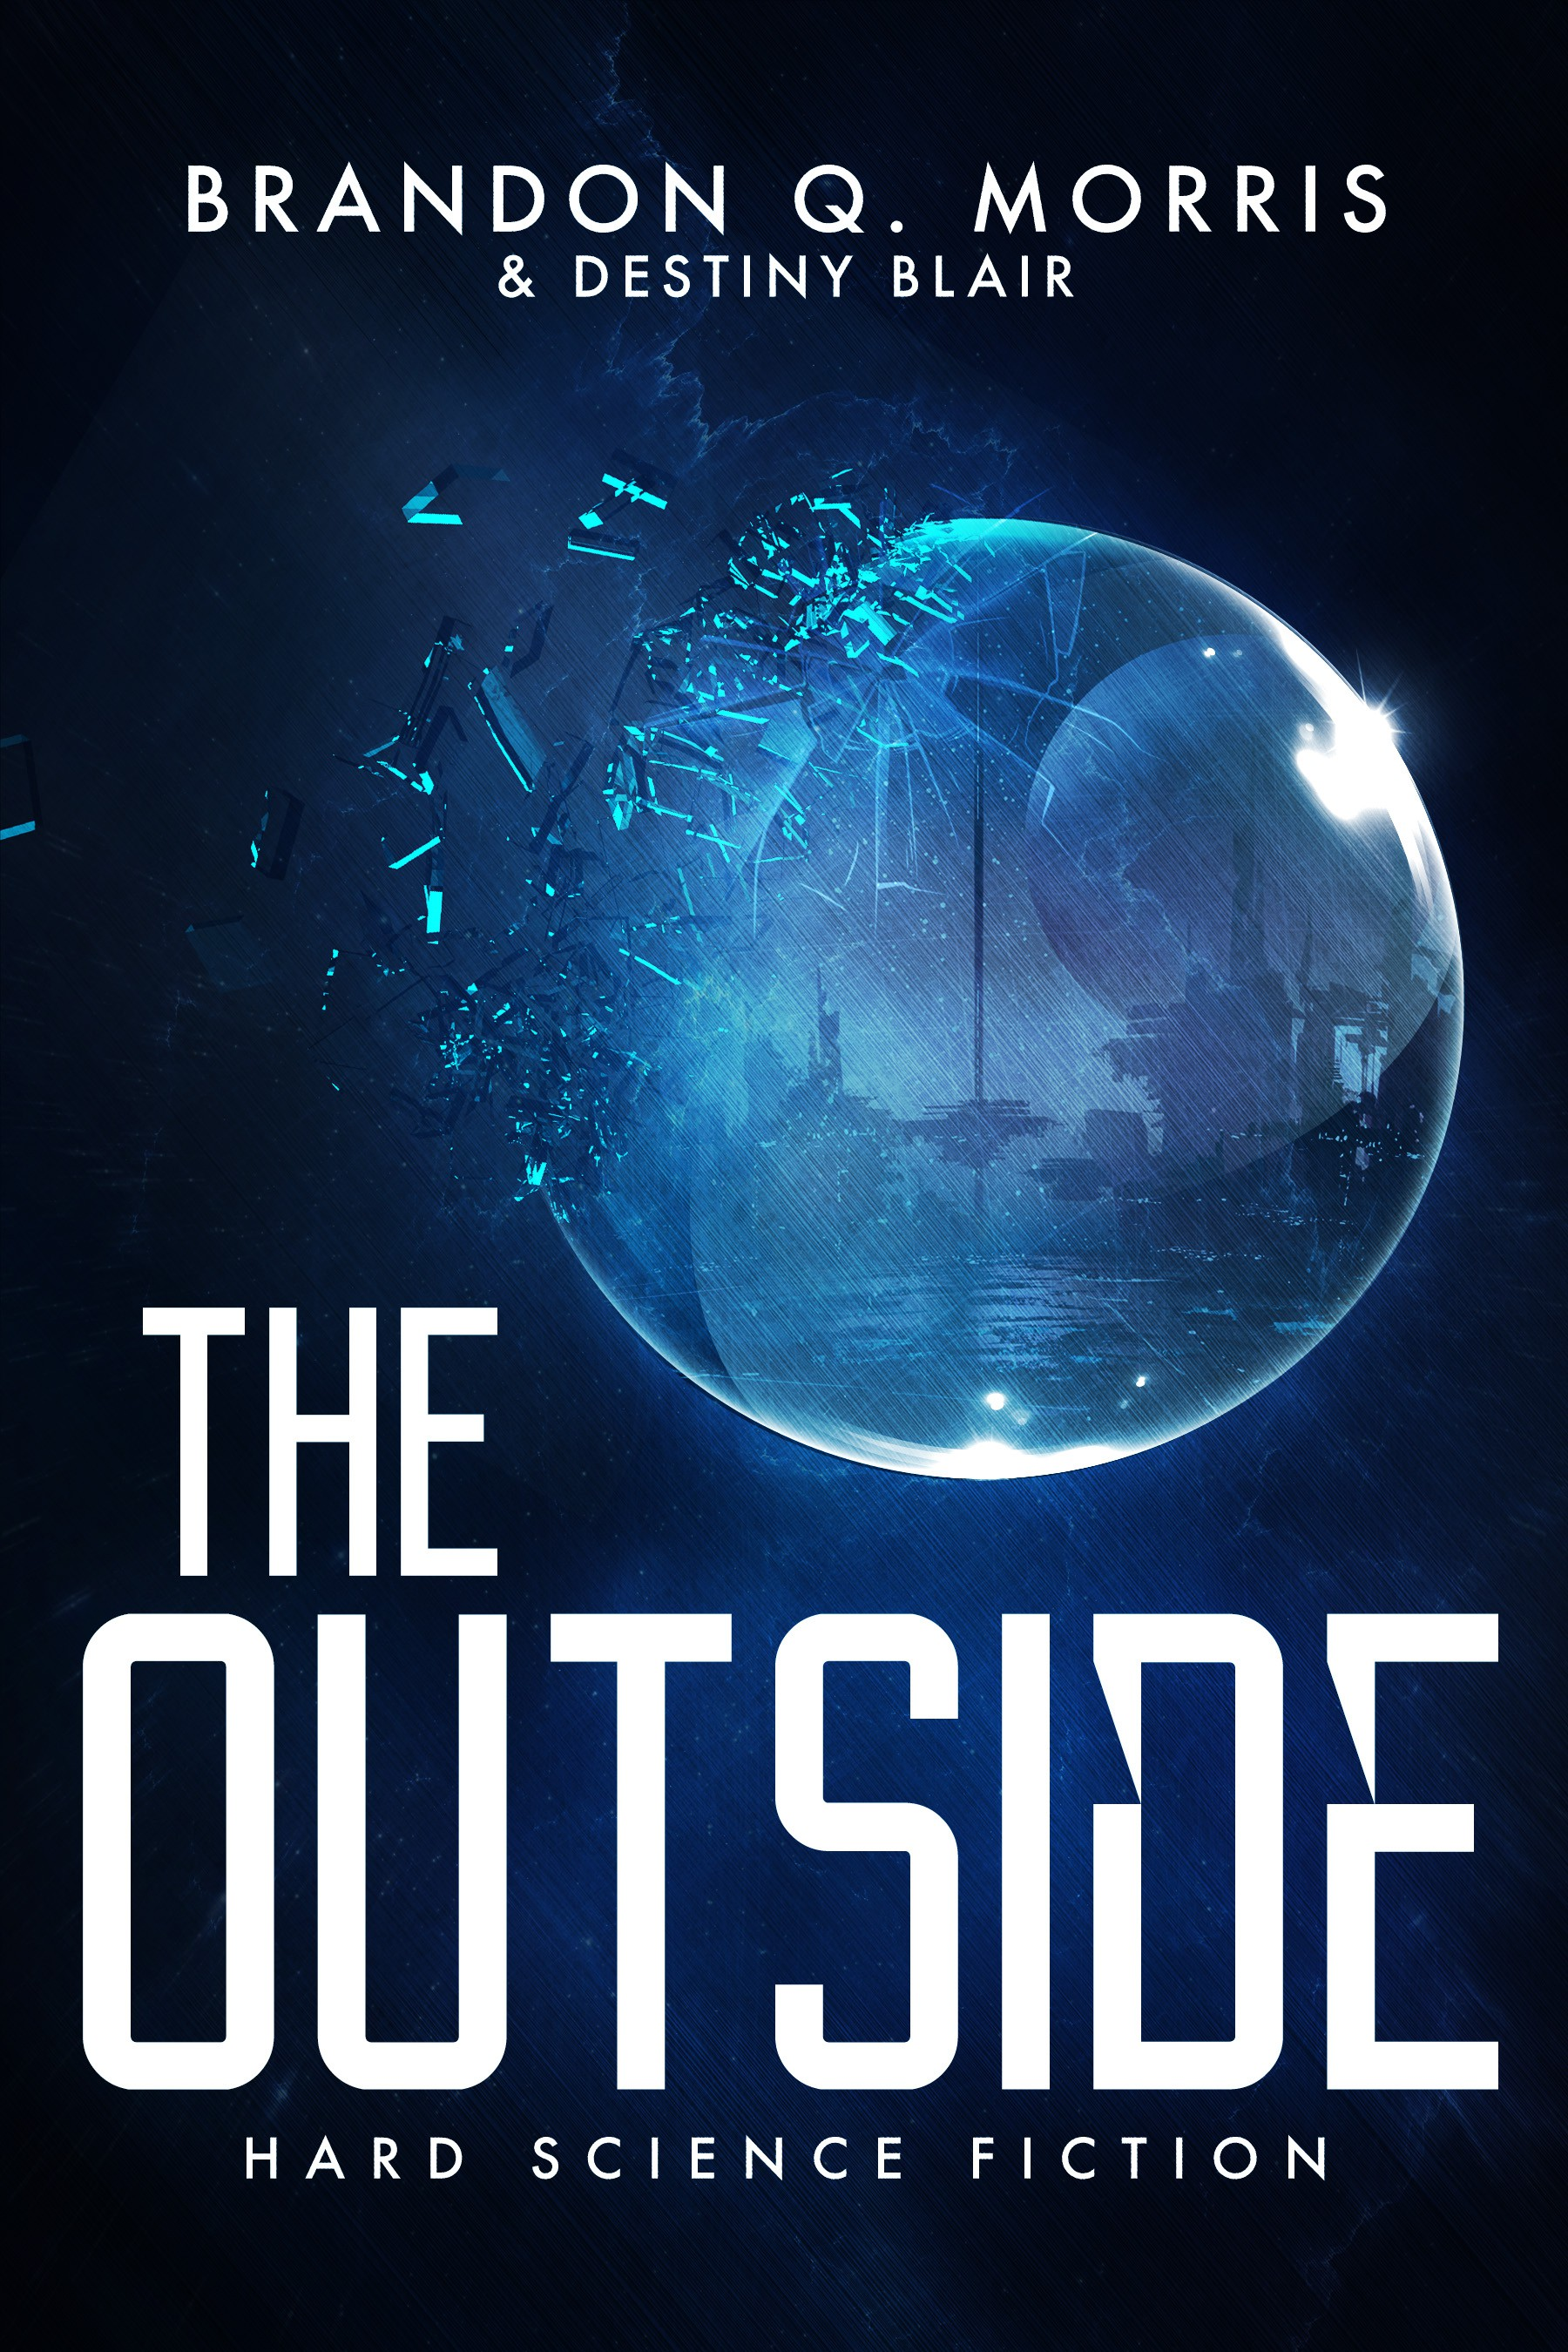 Cover for science fiction novel